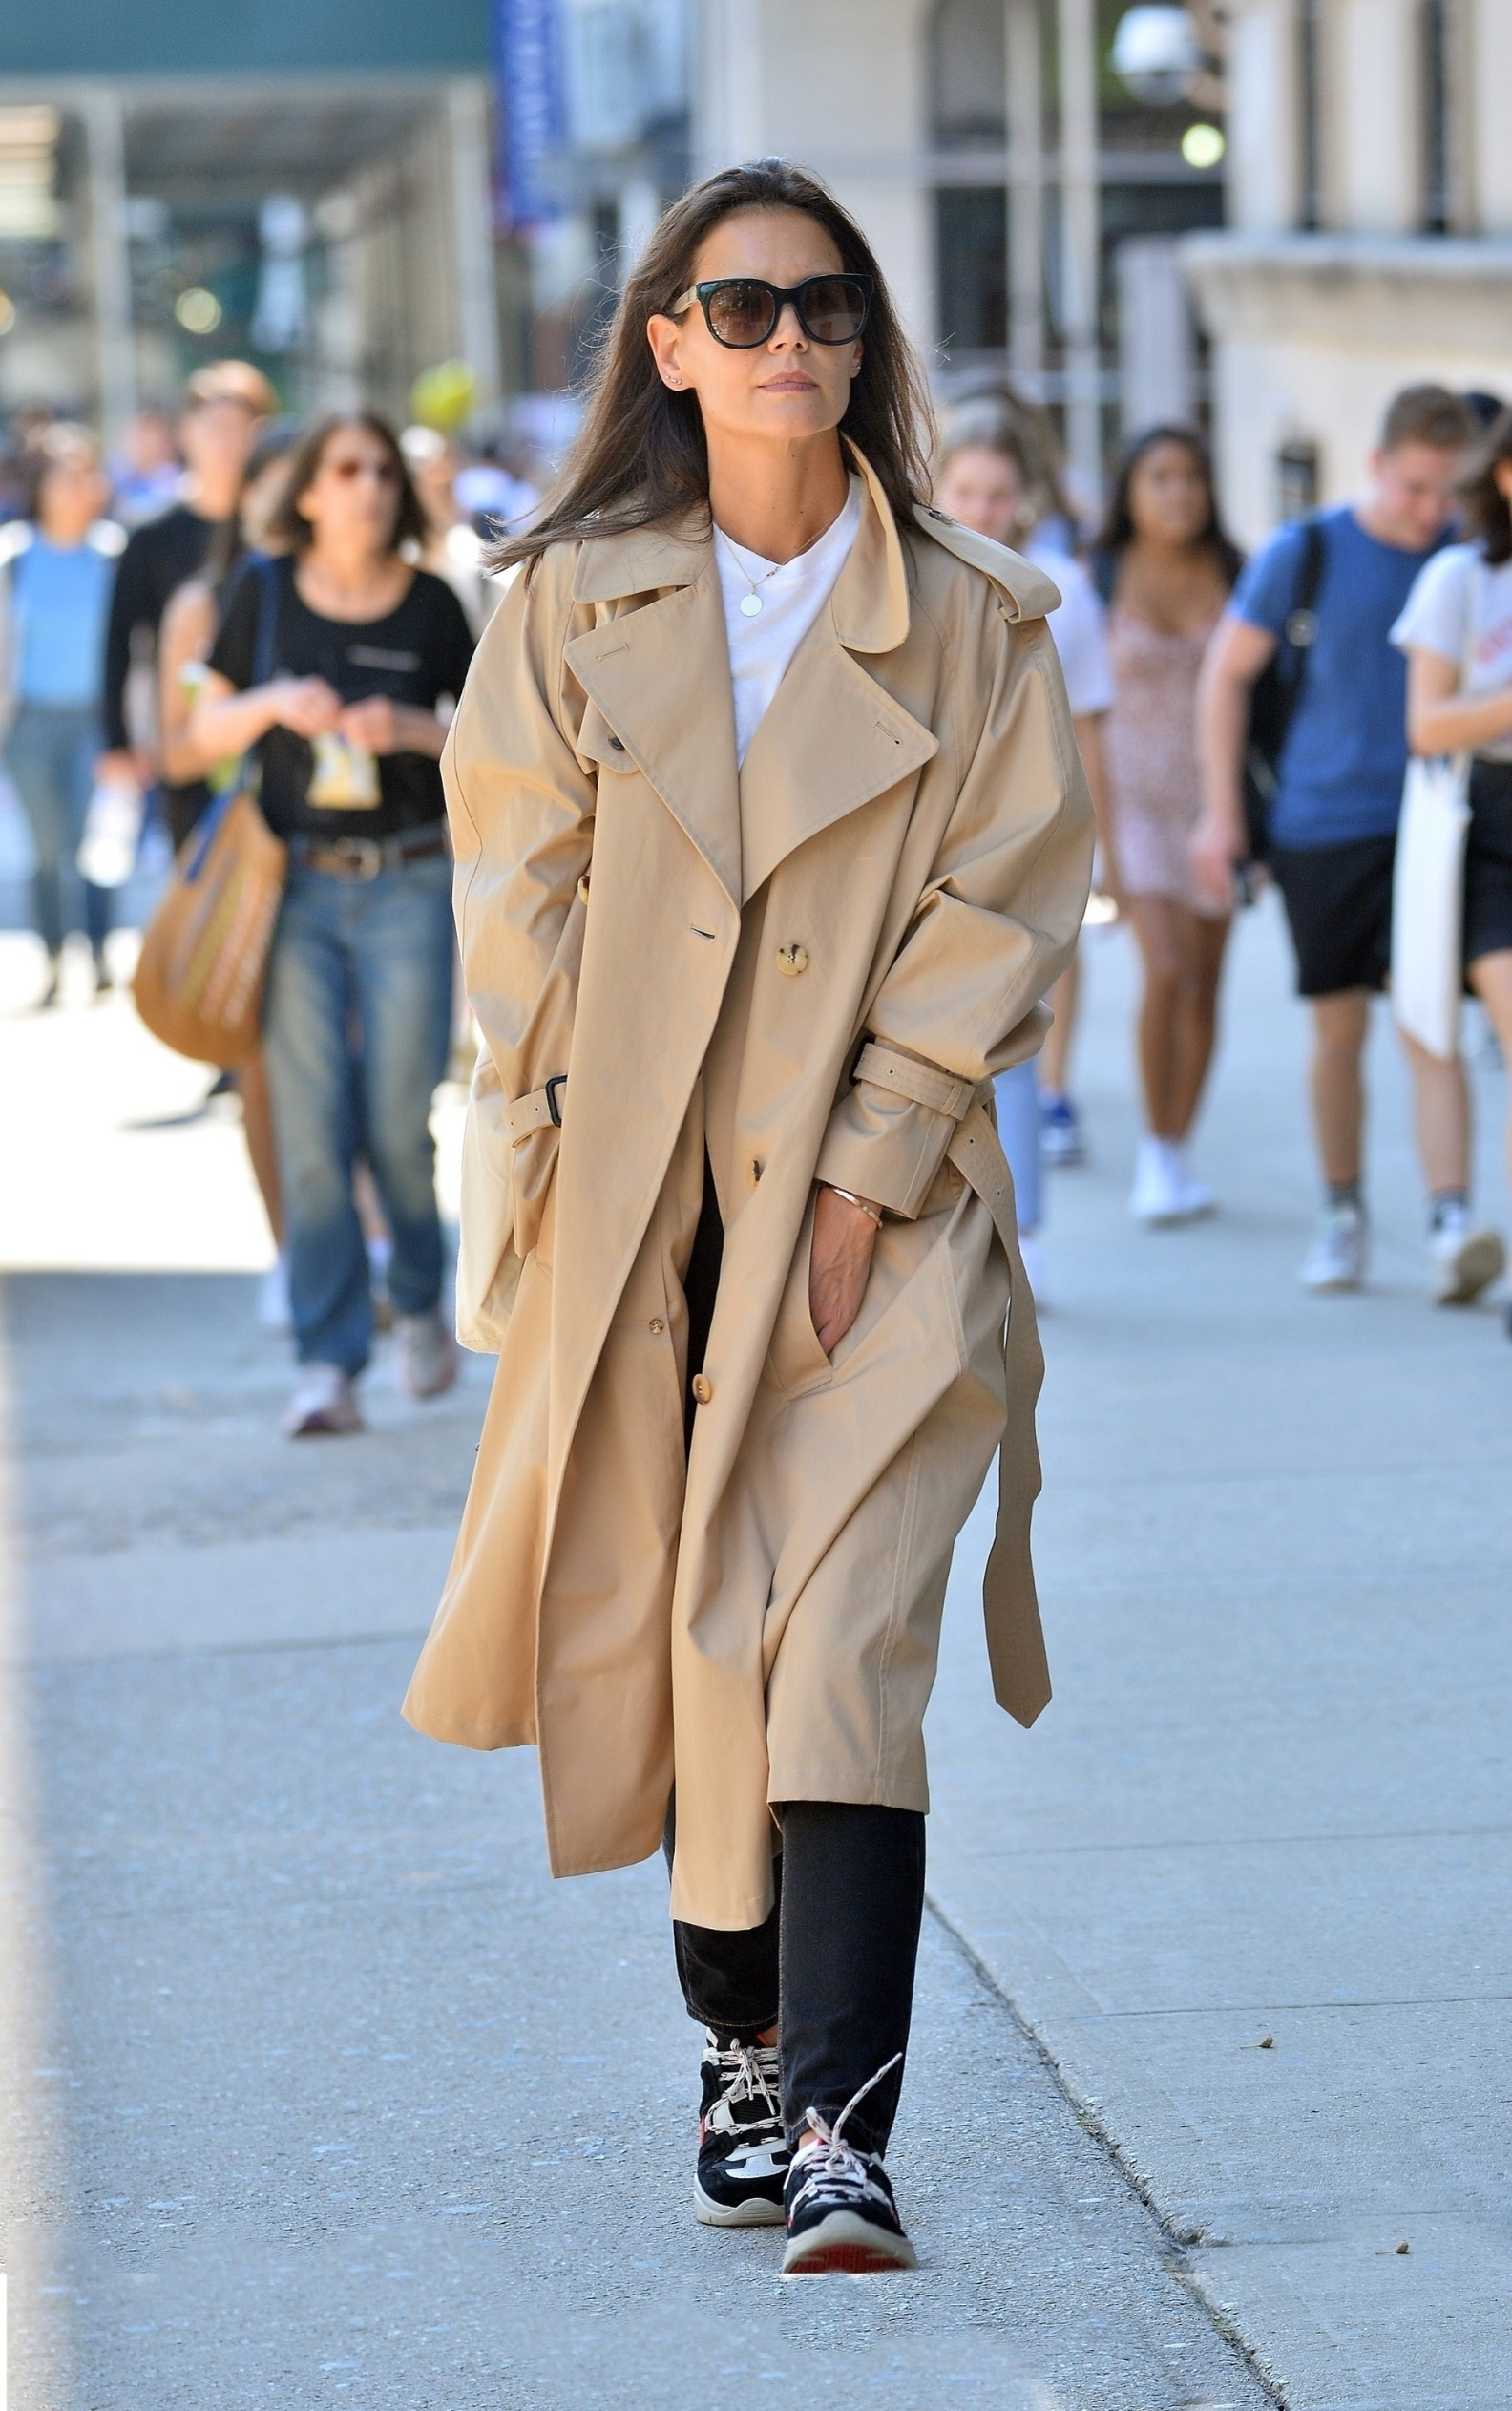 New York, NY  - Katie Holmes is all smiles as she steps out in a trench coat to Columbia University in NYC.  *UK Clients - Pictures Containing Children Please Pixelate Face Prior To Publication*, Image: 468971224, License: Rights-managed, Restrictions: , Model Release: no, Credit line: Profimedia, Backgrid USA